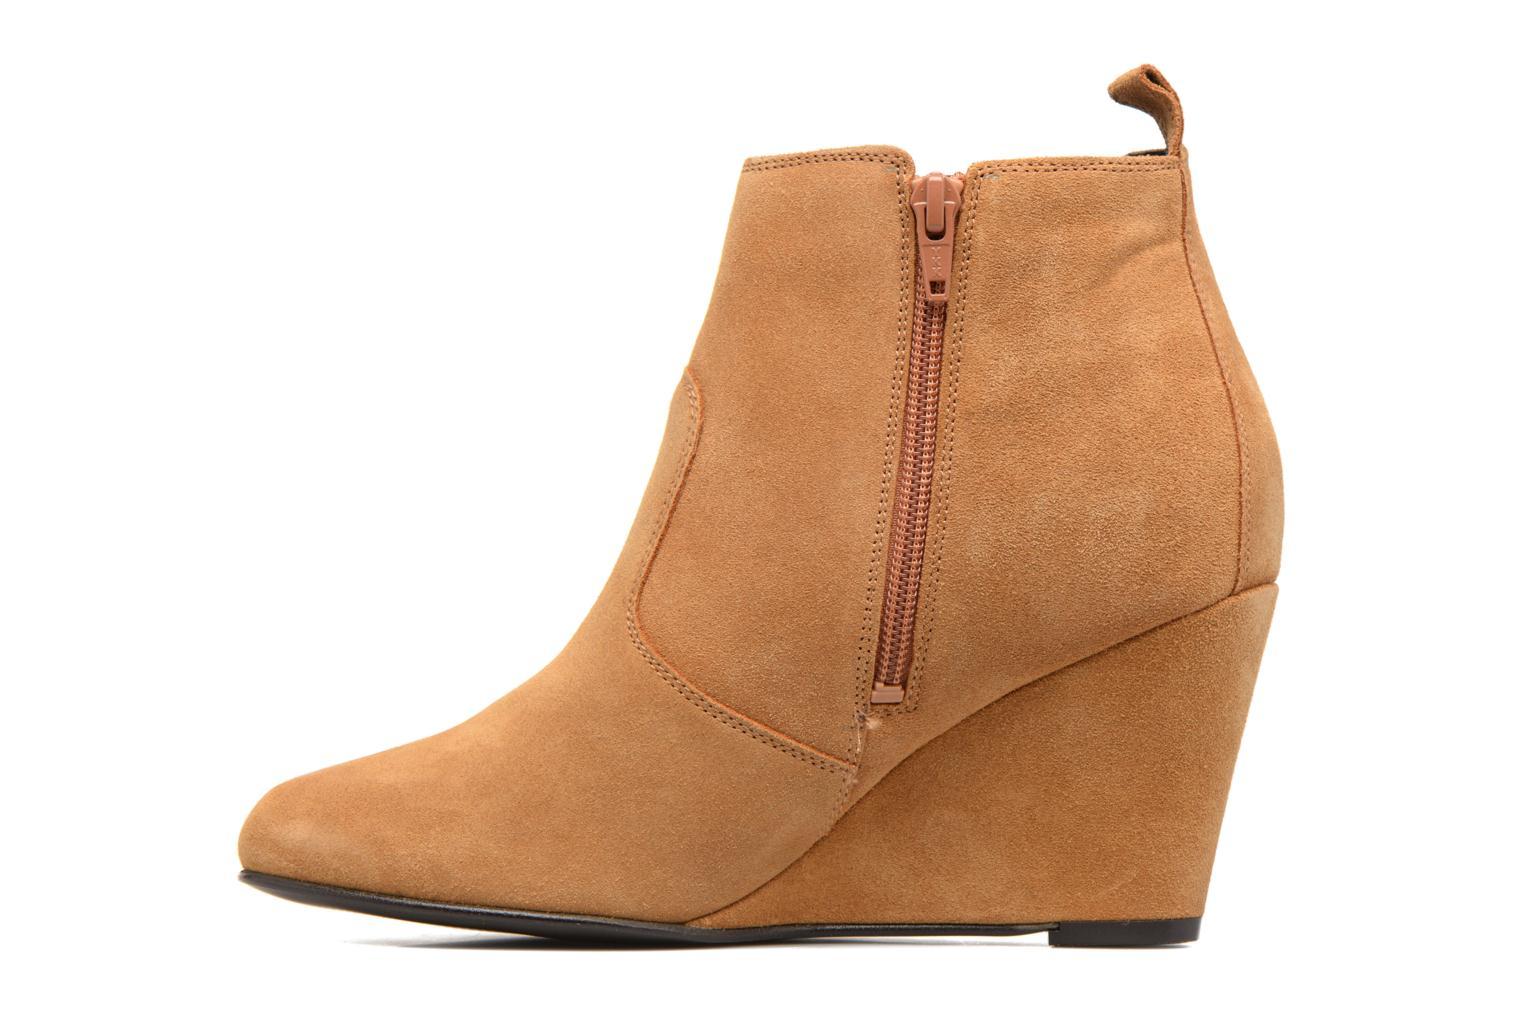 Bottines et boots Vero Moda Lone Leather Wedge Boot Marron vue face